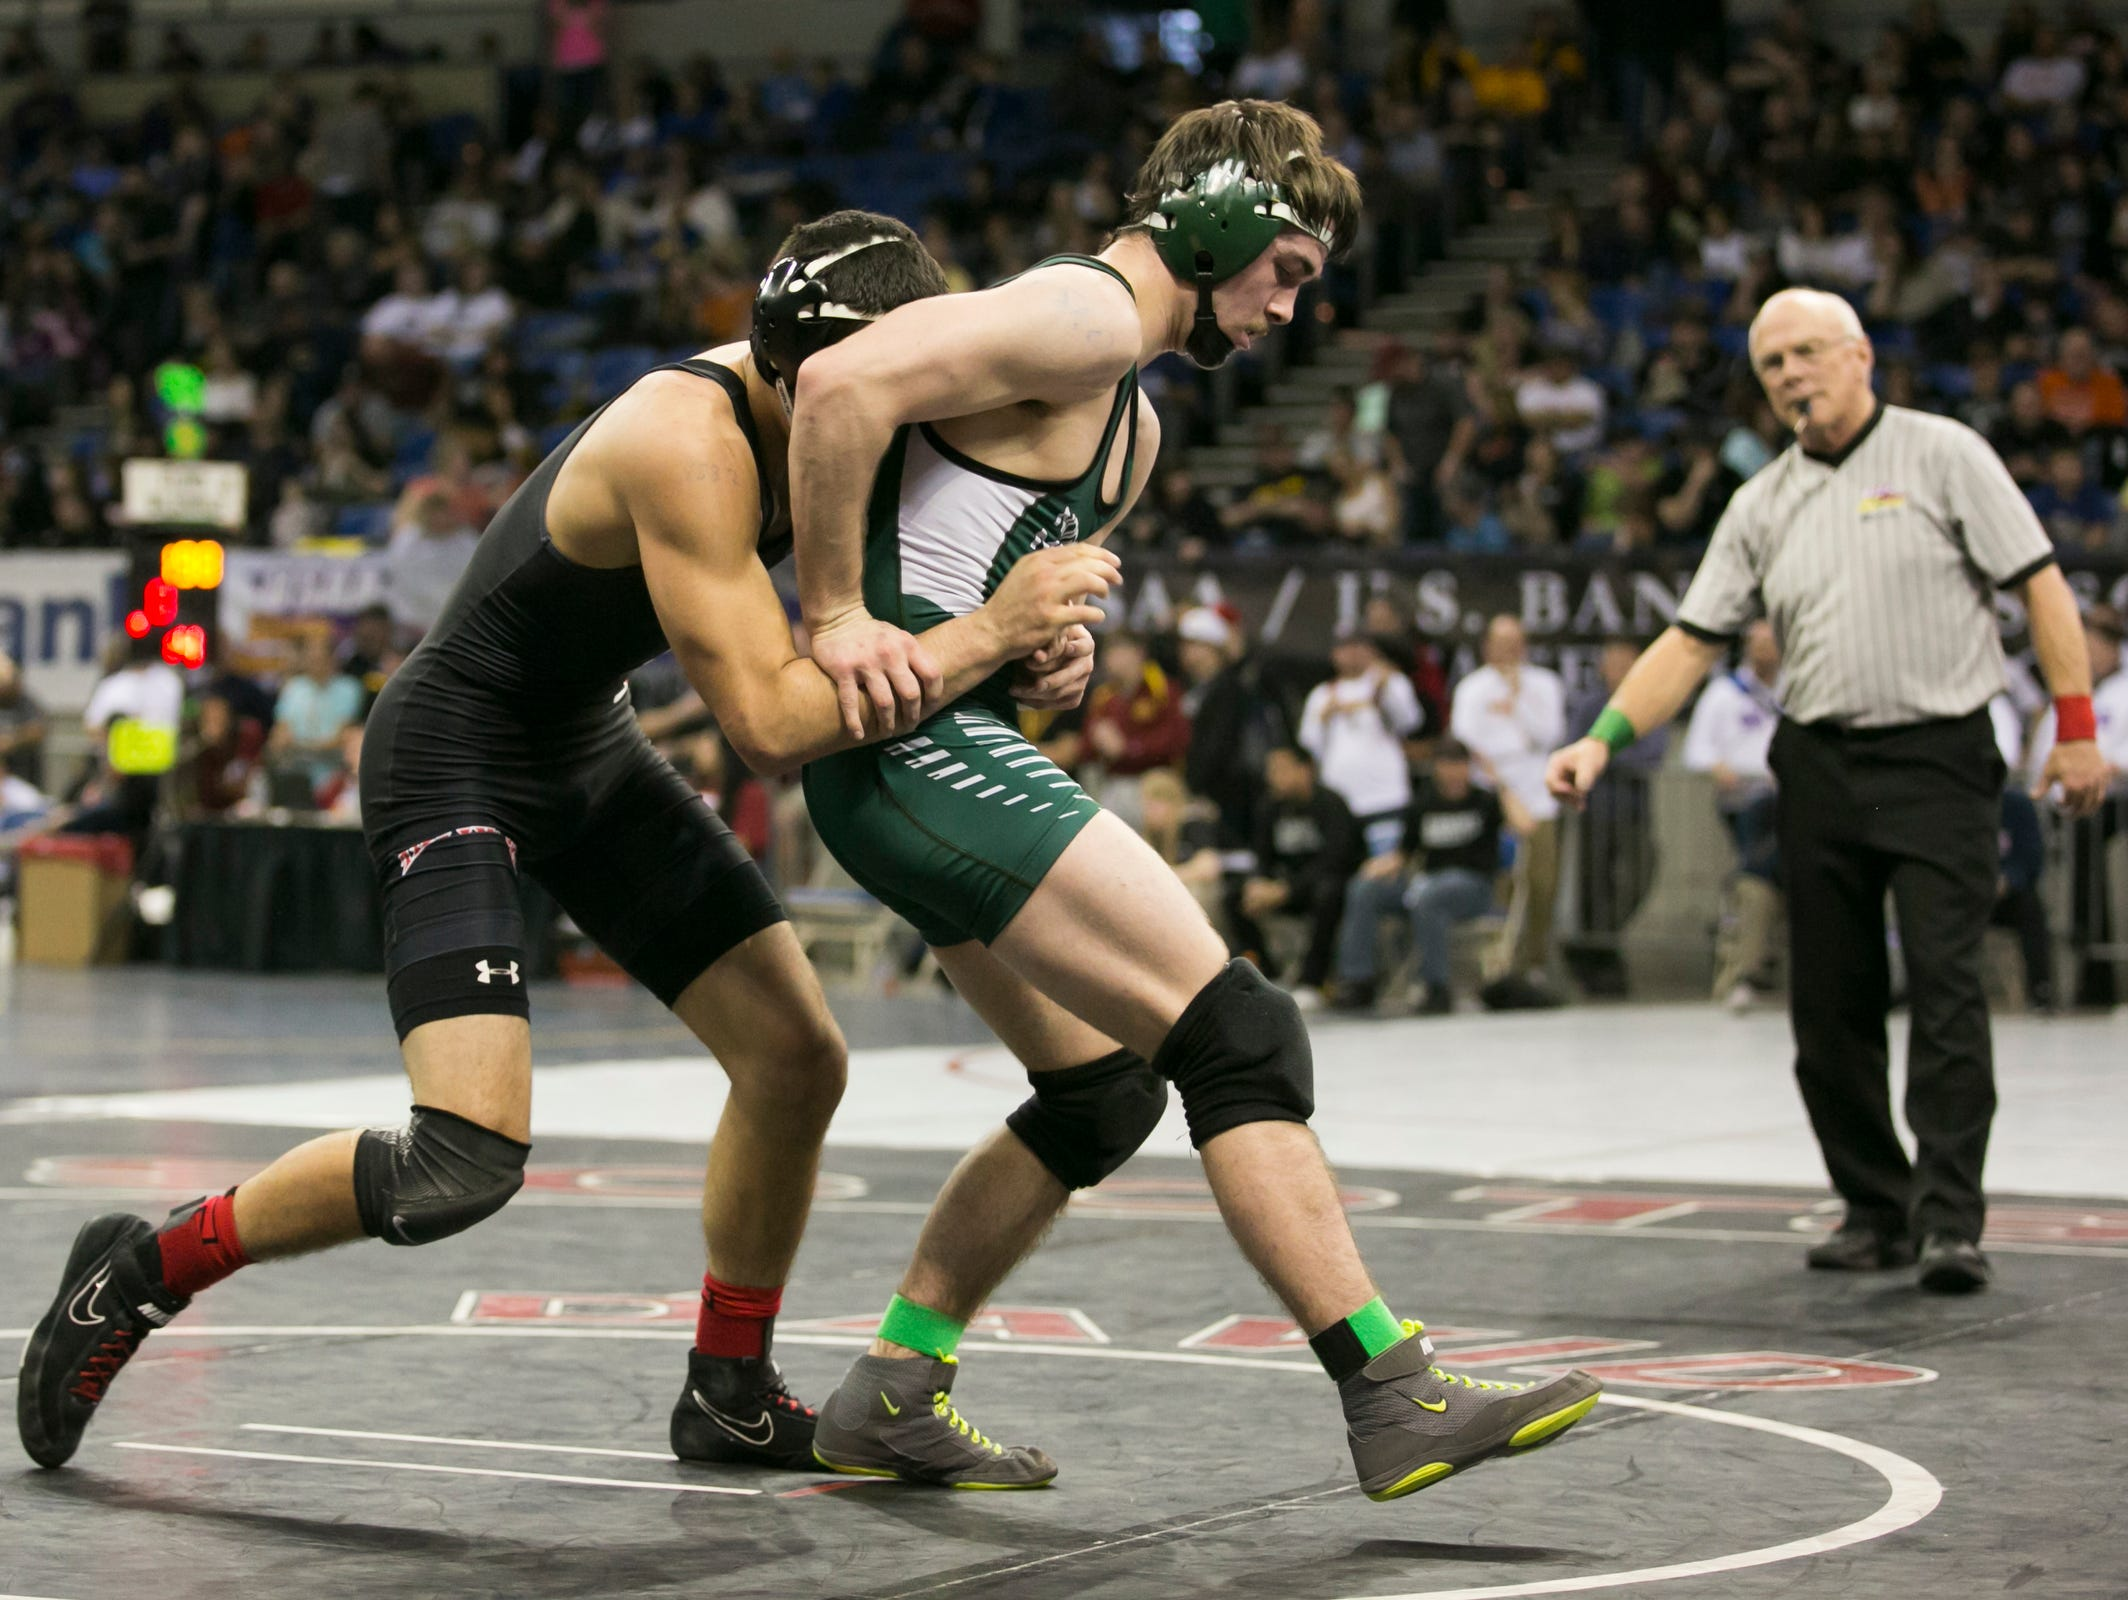 North Marion's Lane Stigall tries to break free of Tillamook's Tylor Garcia at the OSAA state wrestling tournament on Friday, Feb. 26, 2016, at Memorial Coliseum in Portland, Ore. Stigall won the match up.